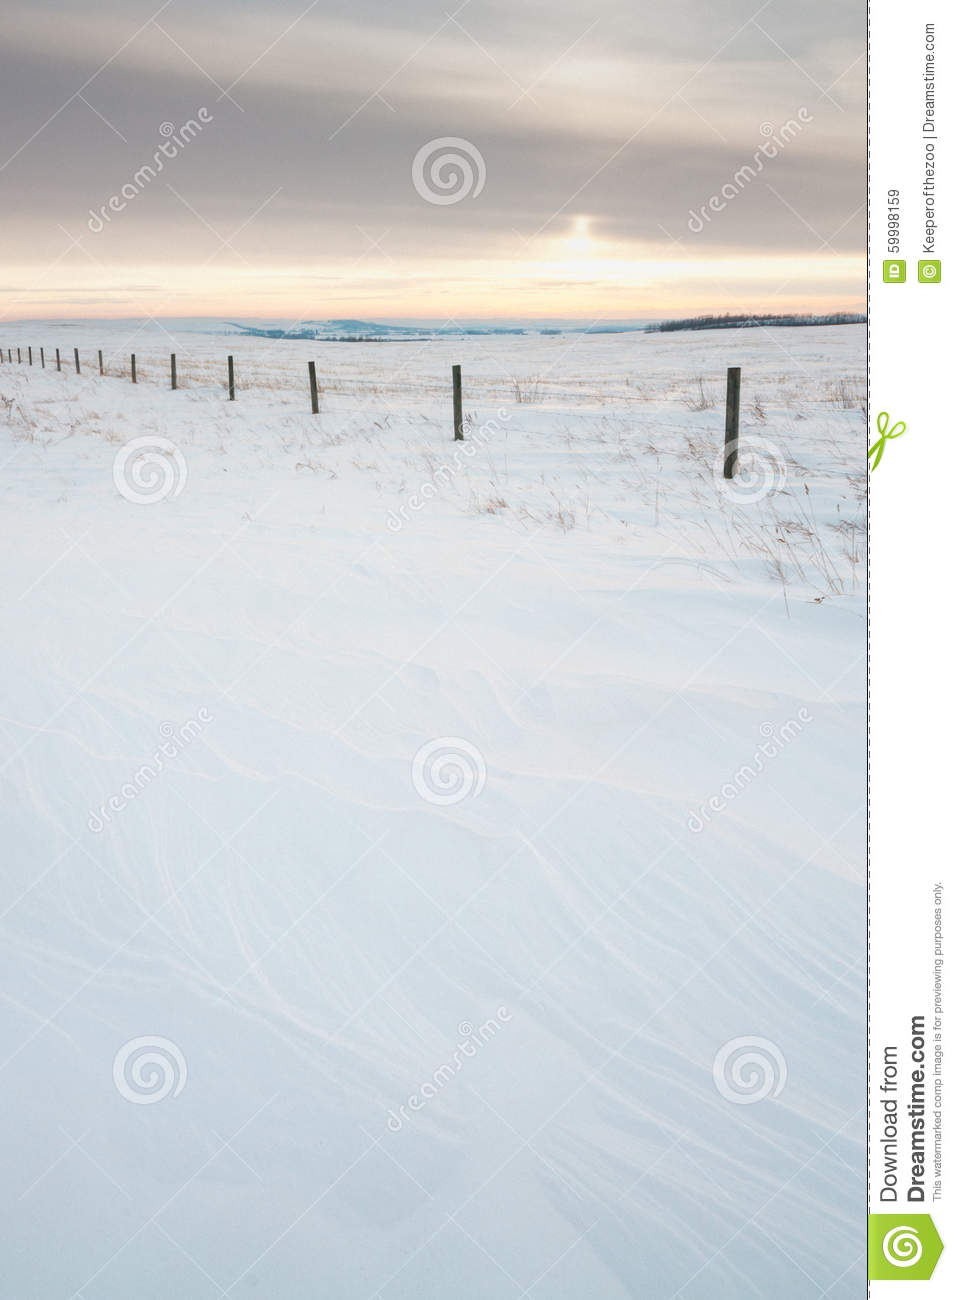 Download Textured Snow Landscape stock image. Image of fence, outdoor - 59998159